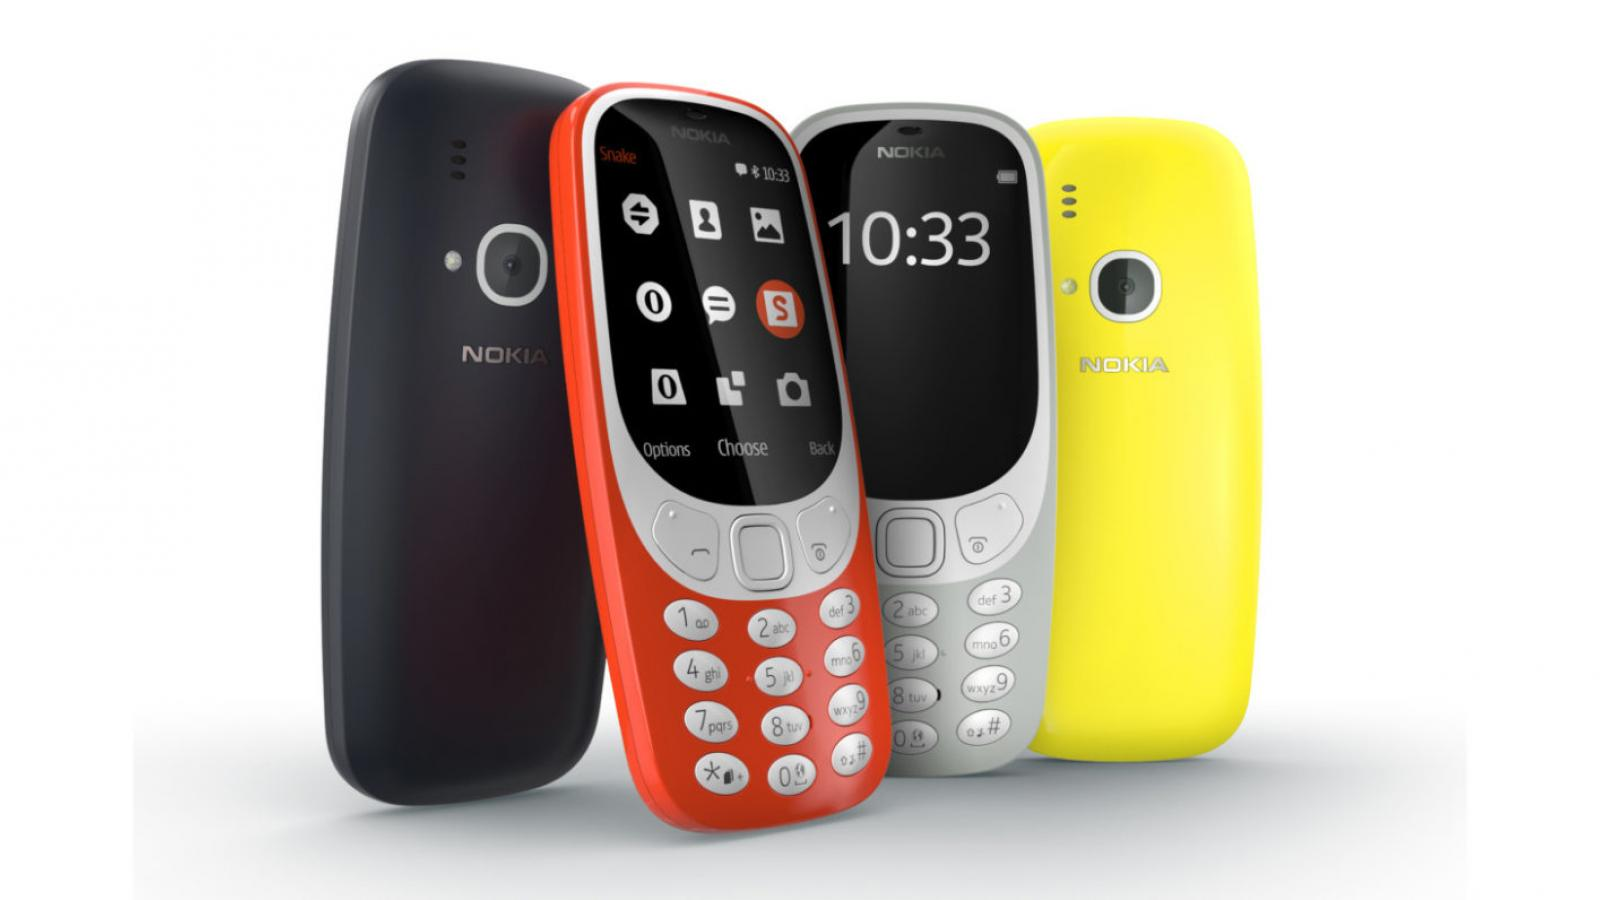 Weekly Roundup: Return of Nokia 3310, Hands-on LG G6 and more